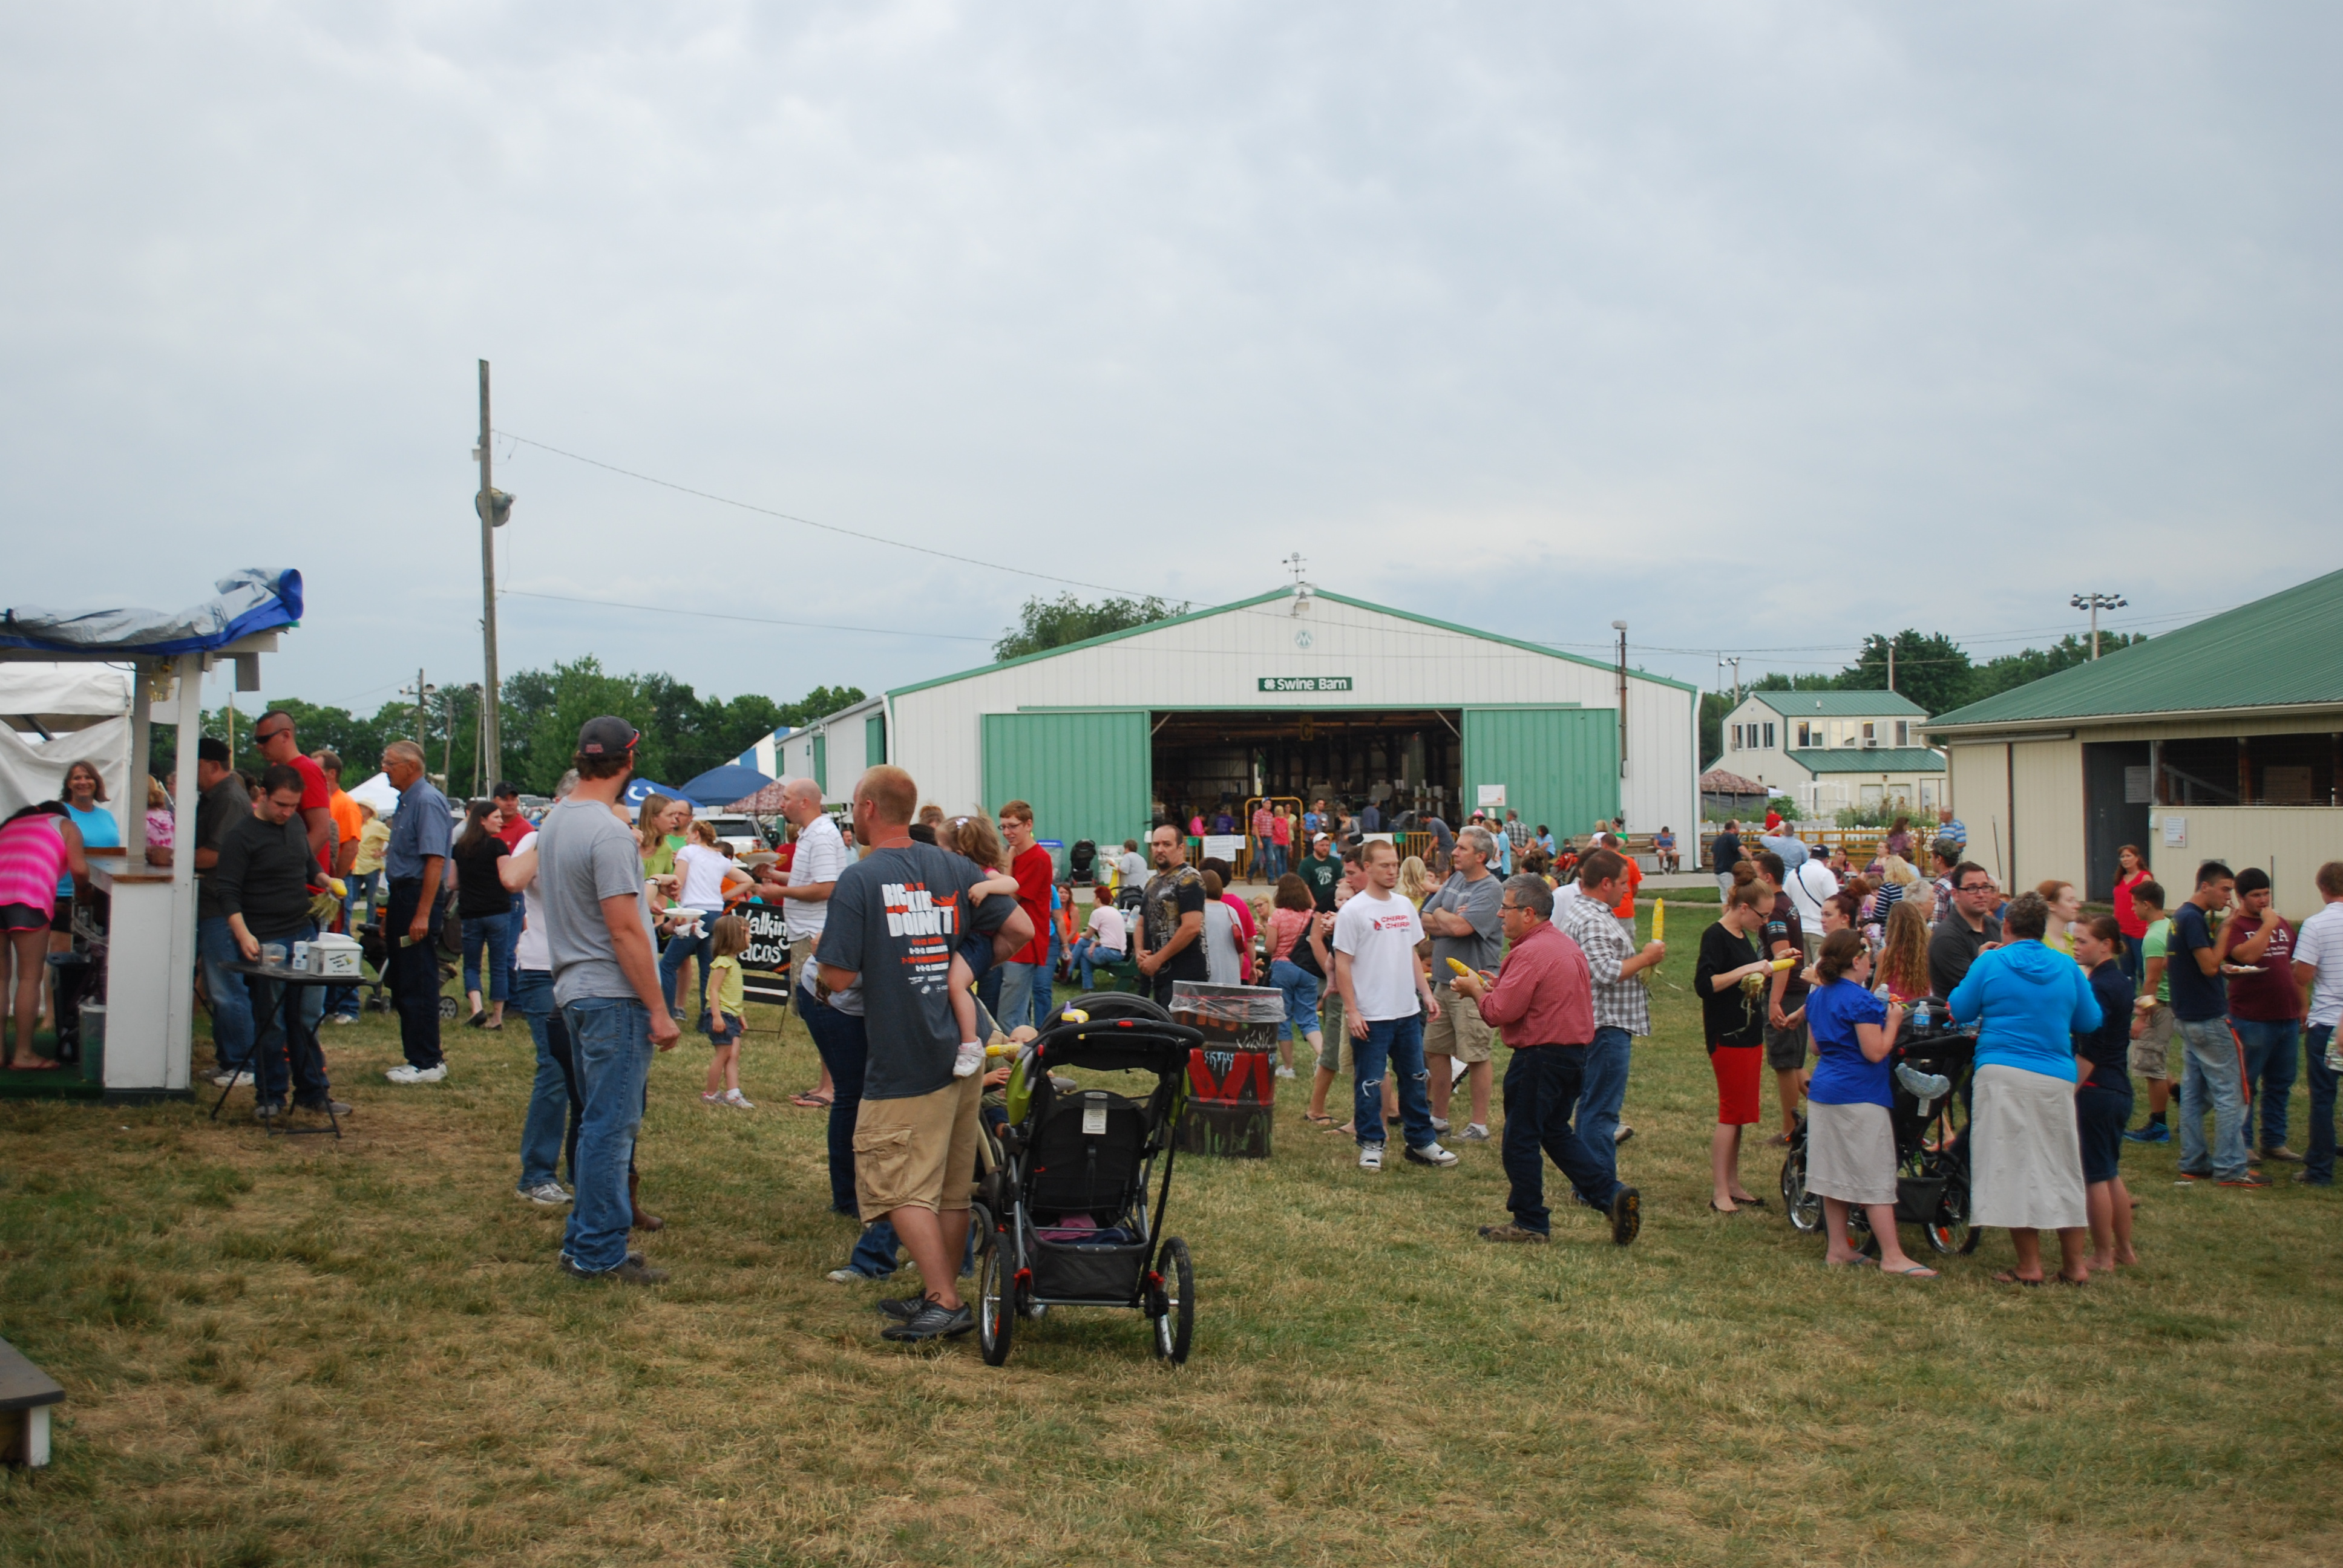 Hamilton County officials estimate that 15,000 to 20,000 people attend the annual 4-H Fair. The number is weather dependent; too hot or stormy and numbers are down. (File photo)